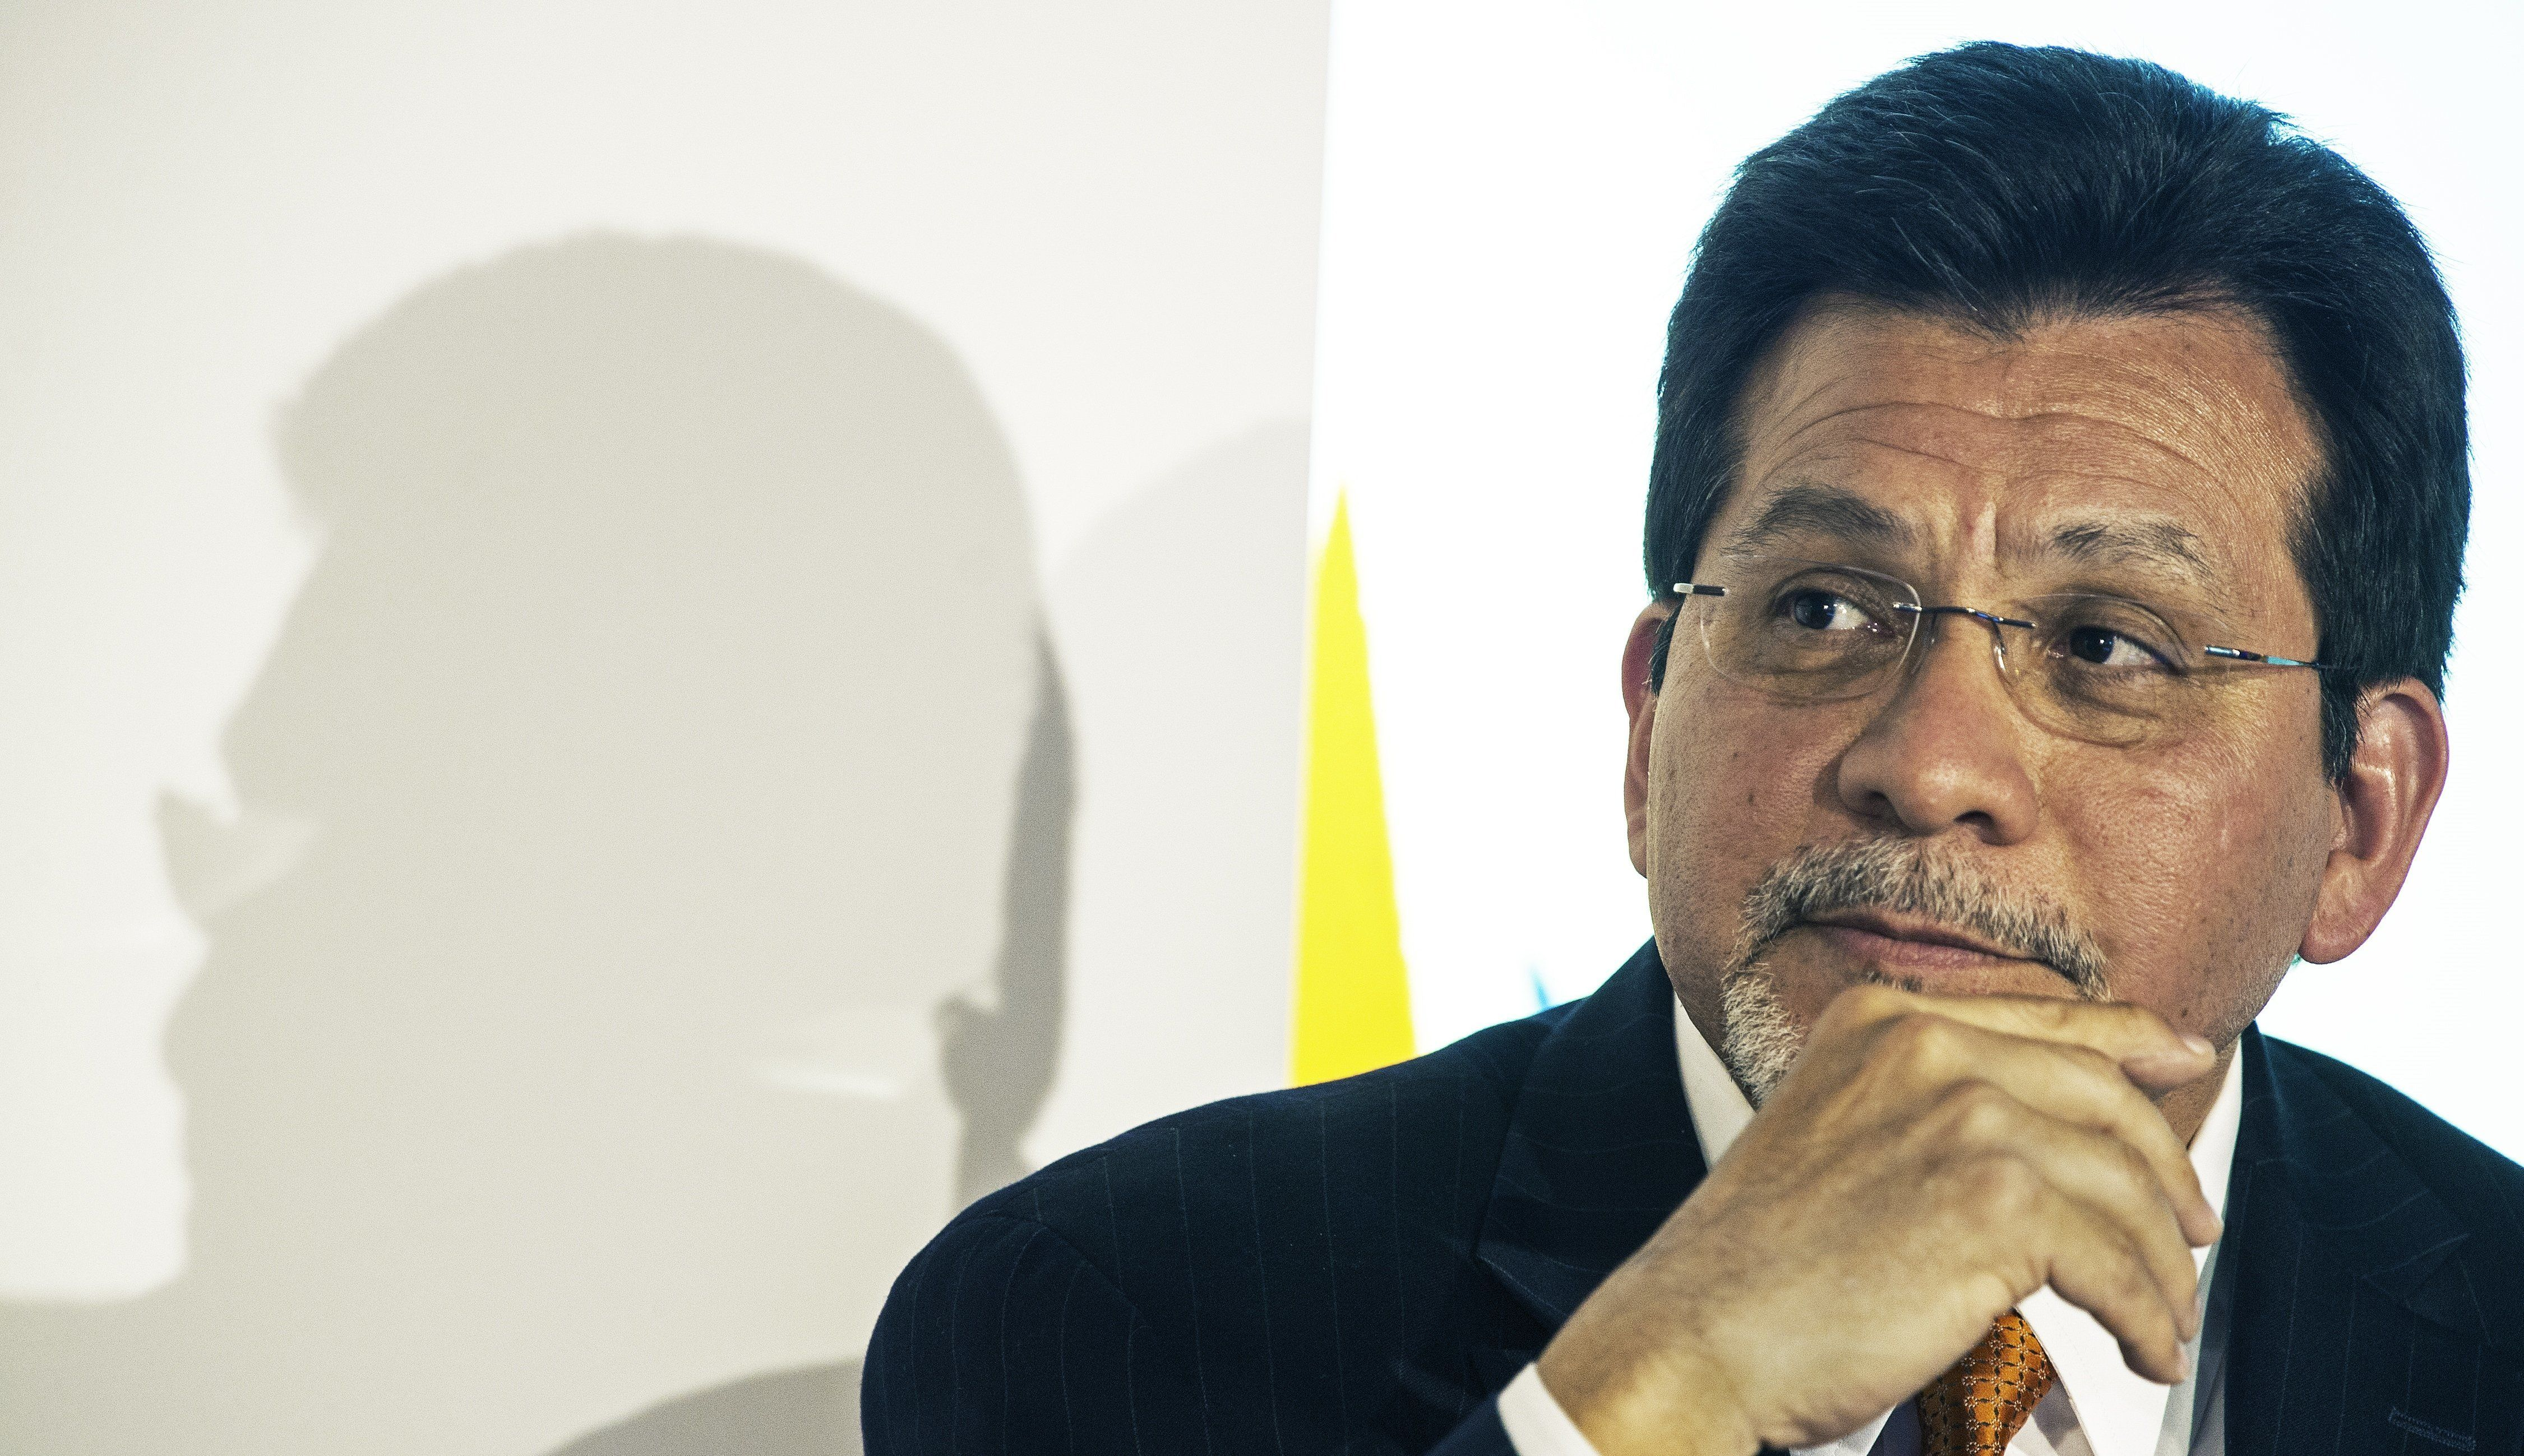 Former Attorney General AlbertoGonzales said James Comey's letter did not help the situation.